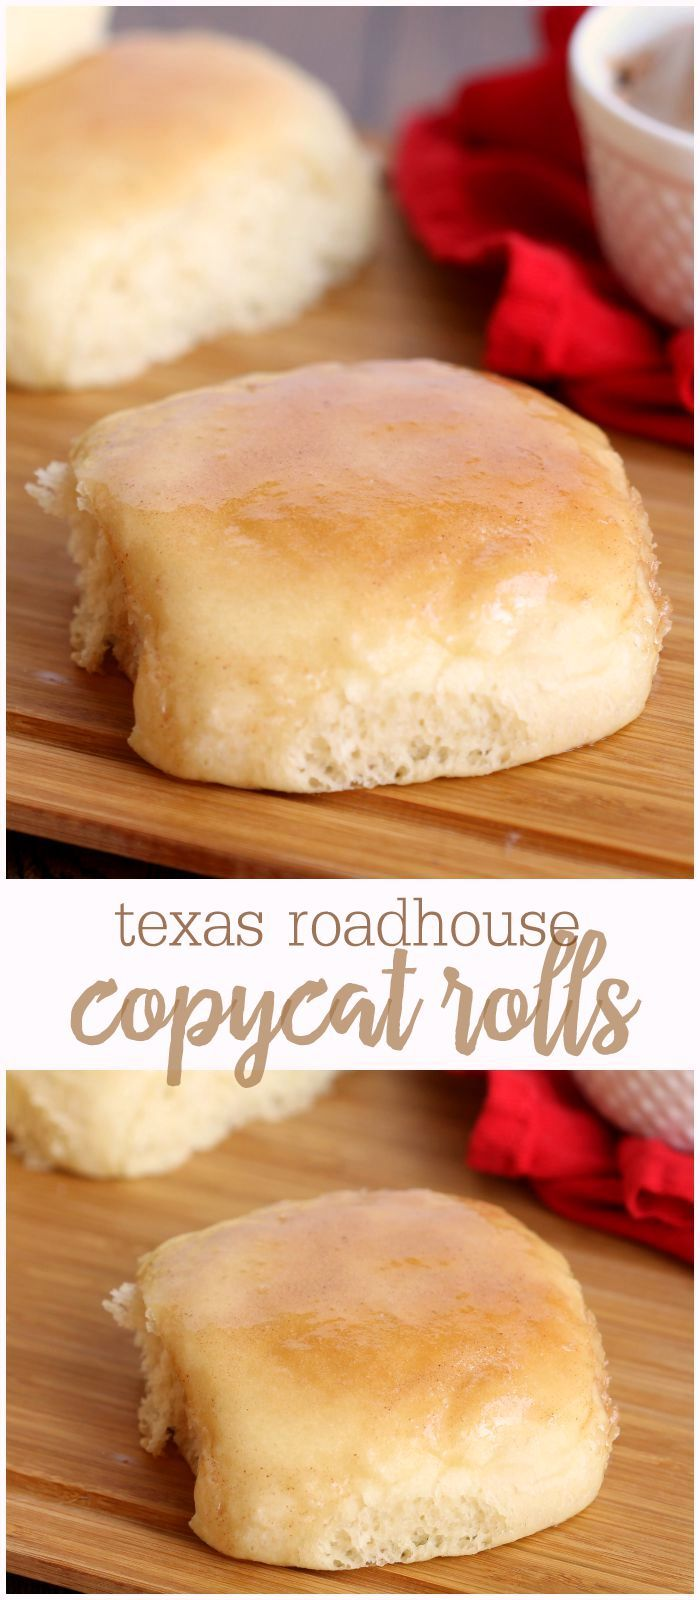 Texas Roadhouse Copycat Rolls with Cinnamon Butter - so soft they melt in your mouth!! { lilluna.com }